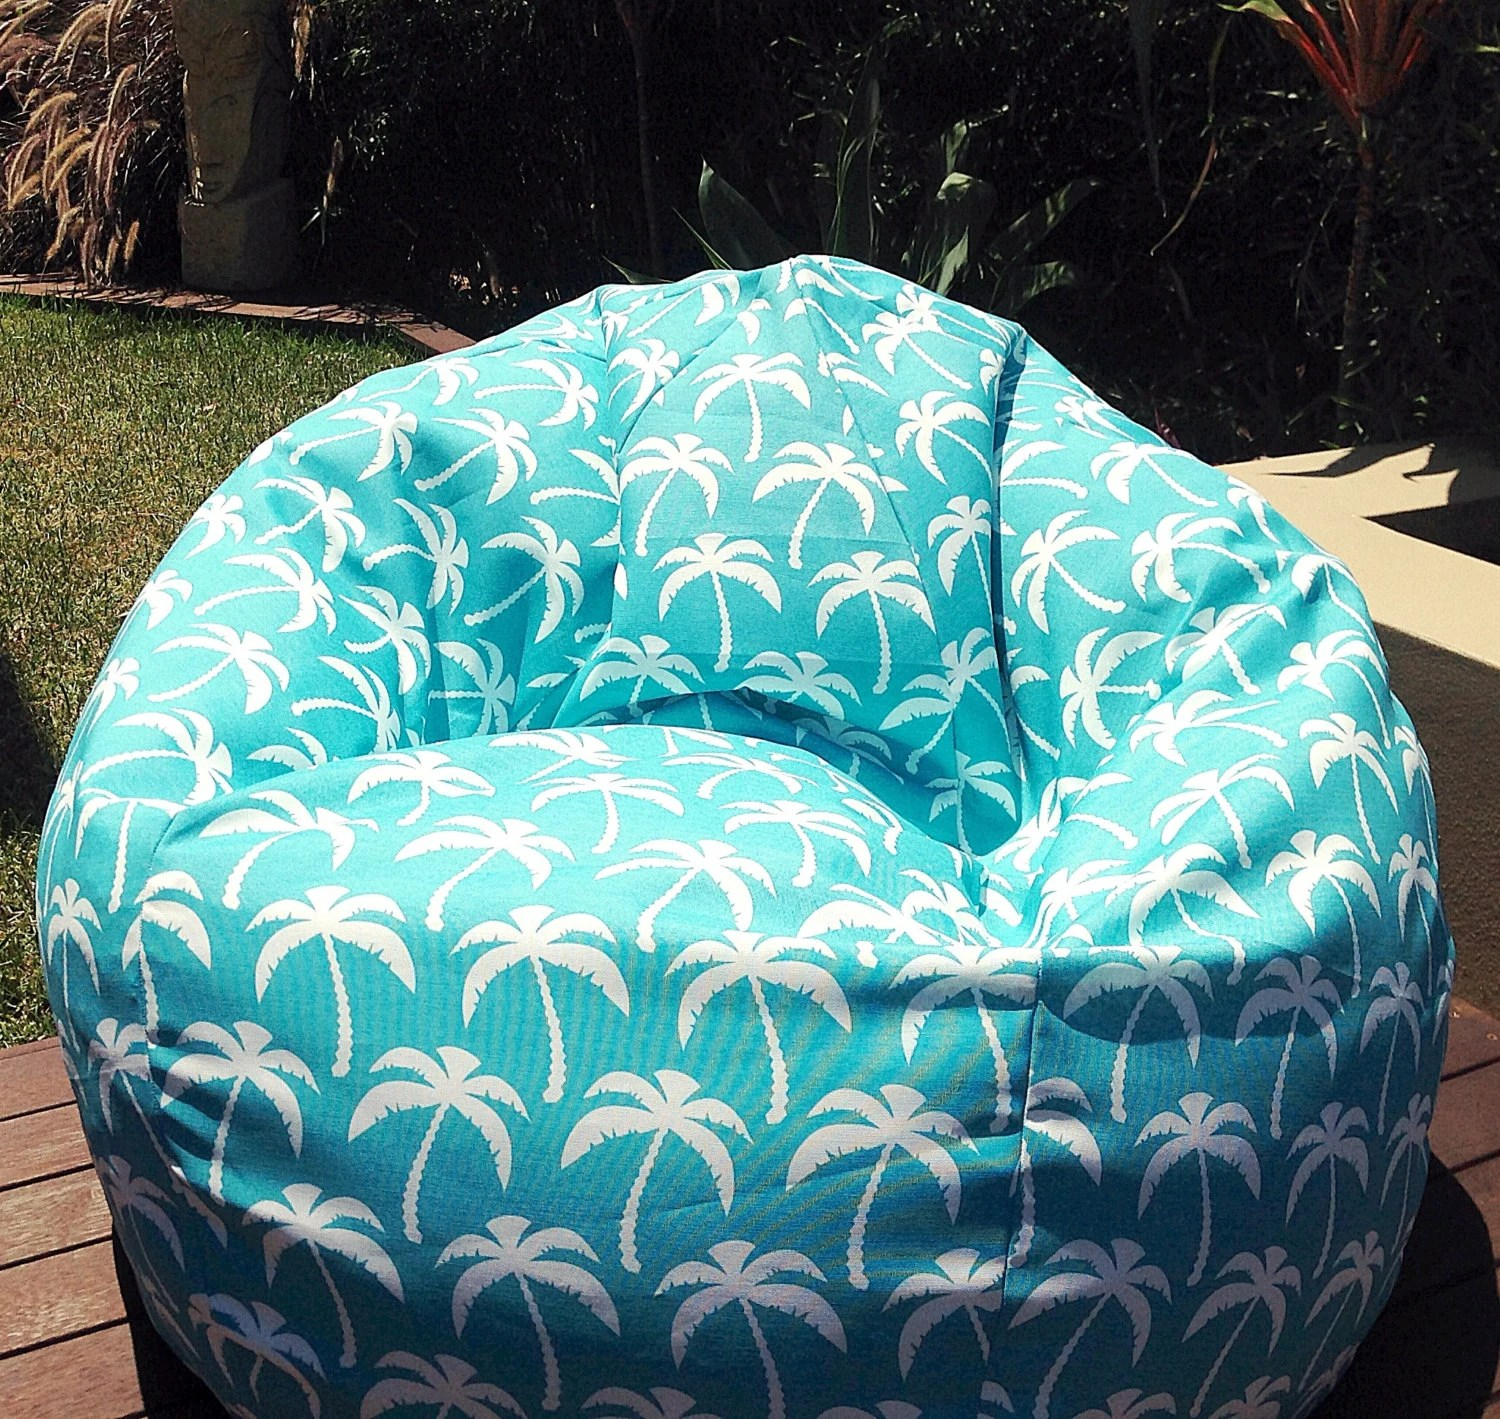 Outdoor Bean Bag Chairs Outdoor Bean Bag Palm Springs Turquoise Cool Funky Retro